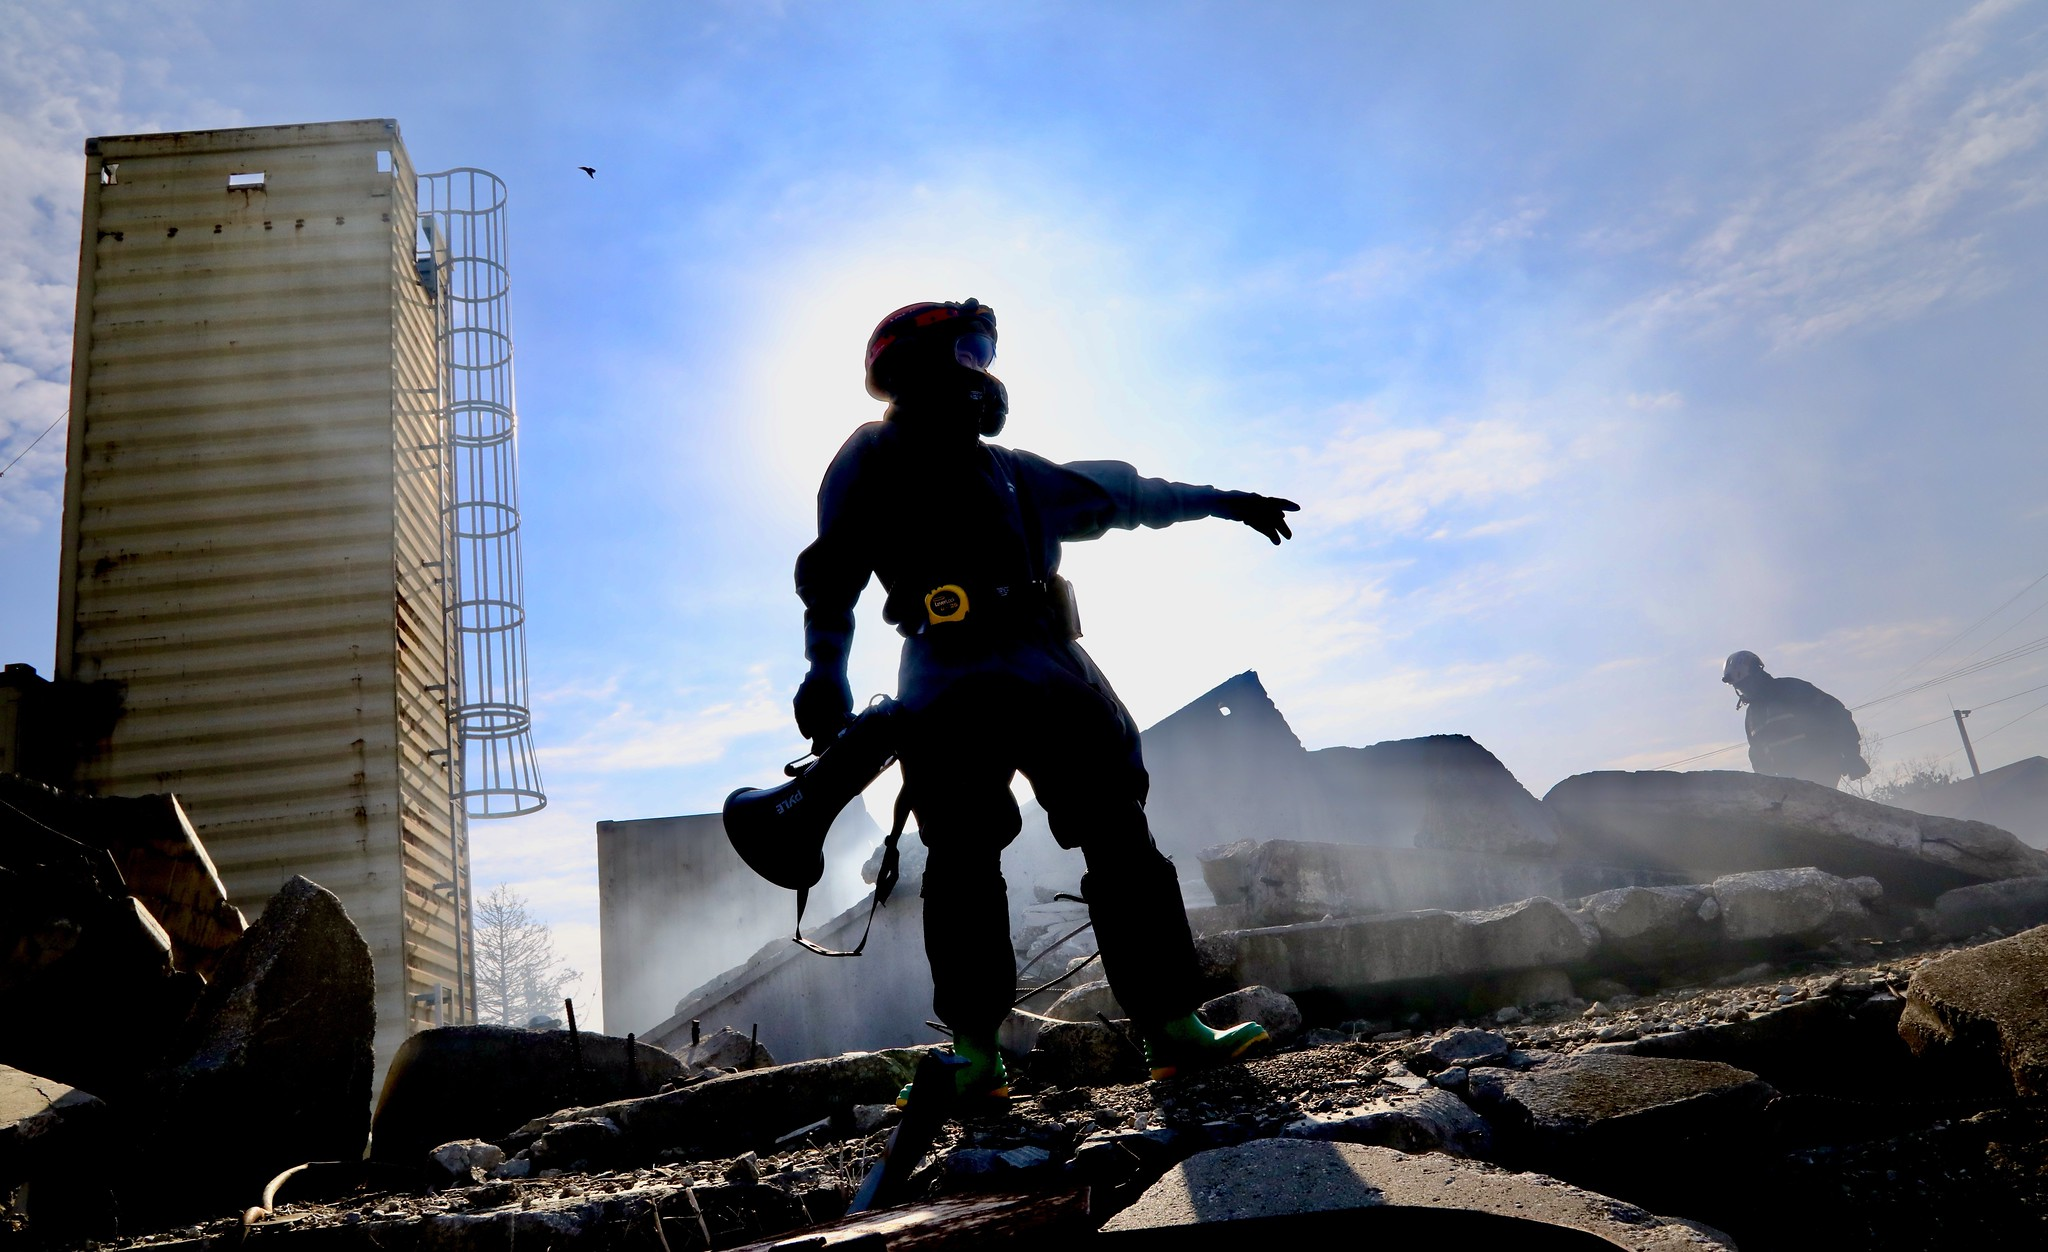 A soldier stands on a pile of rubble and directs his fellow soldiers where to look for possible survivors of a building collapse on April 22, 2021, at the Muscatatuck Urban Training Center in Butlerville, Ind., during the Guardian Response 21 exercise. (Sgt. 1st Class Brent C. Powell/Army)